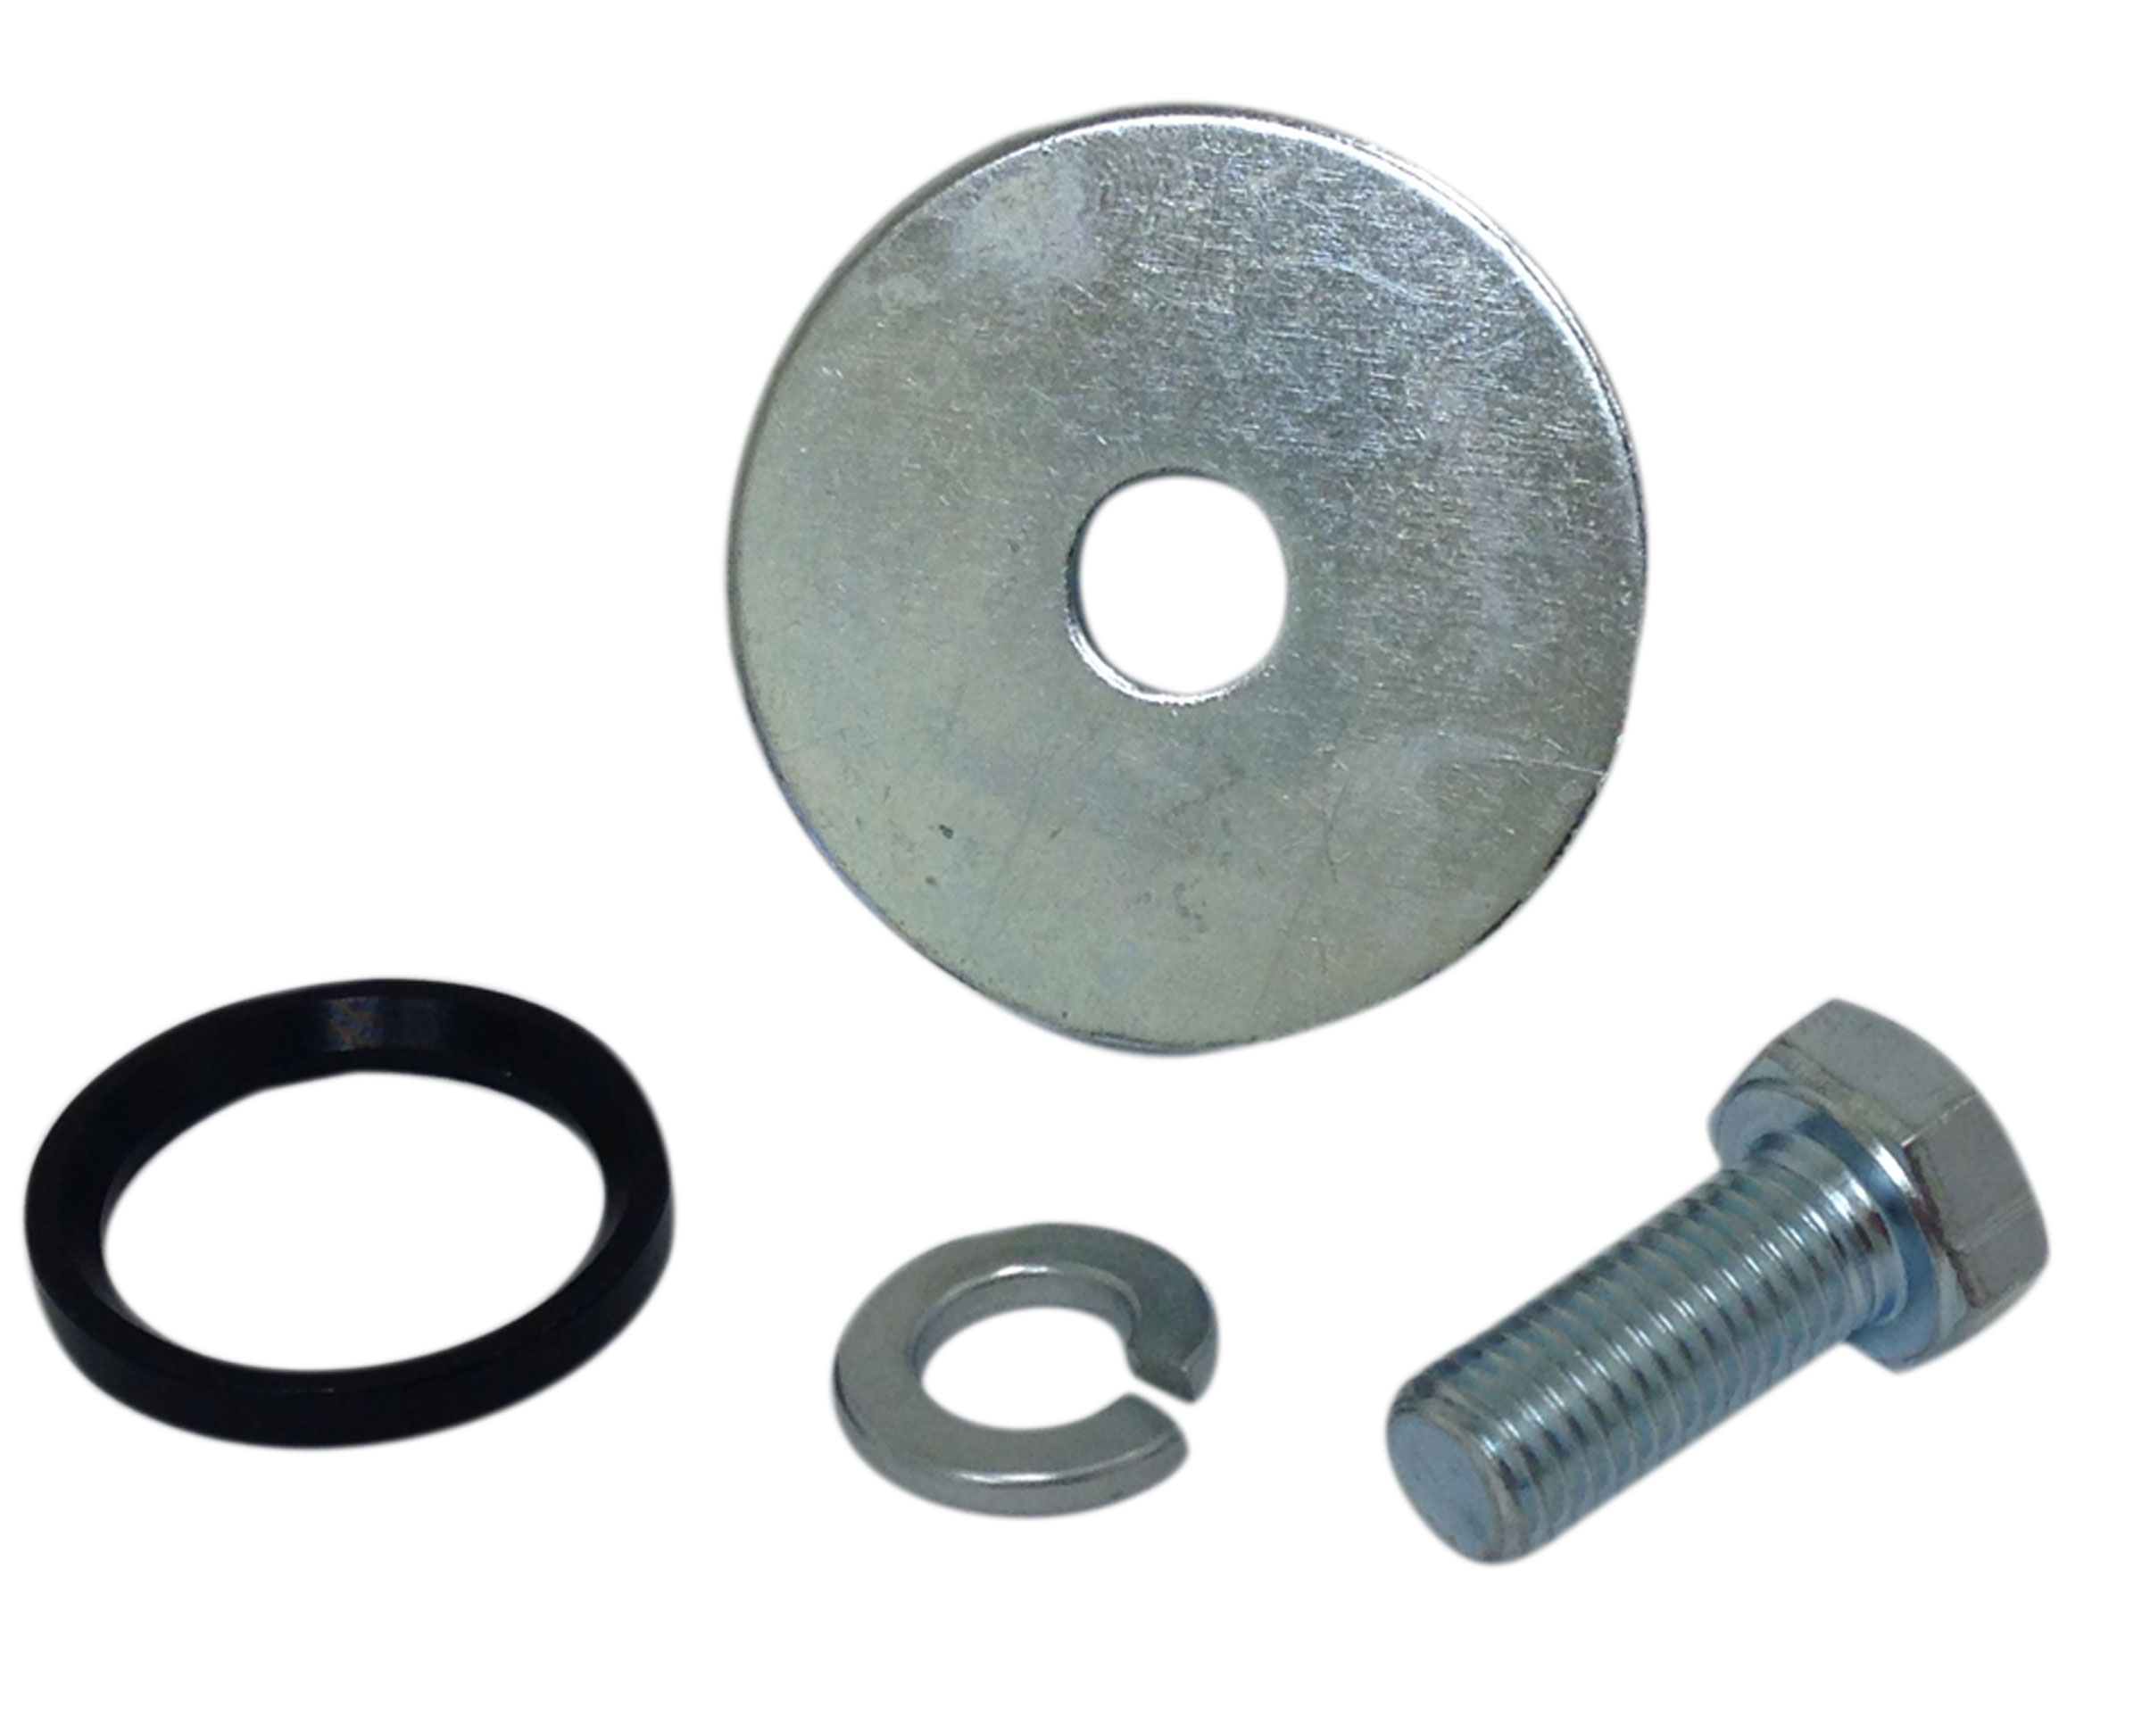 Hilliard Clutch Mounting Kit (required on LO206) | 404499 | Hilliard  8444-9U-030 | BMI Karts And Parts